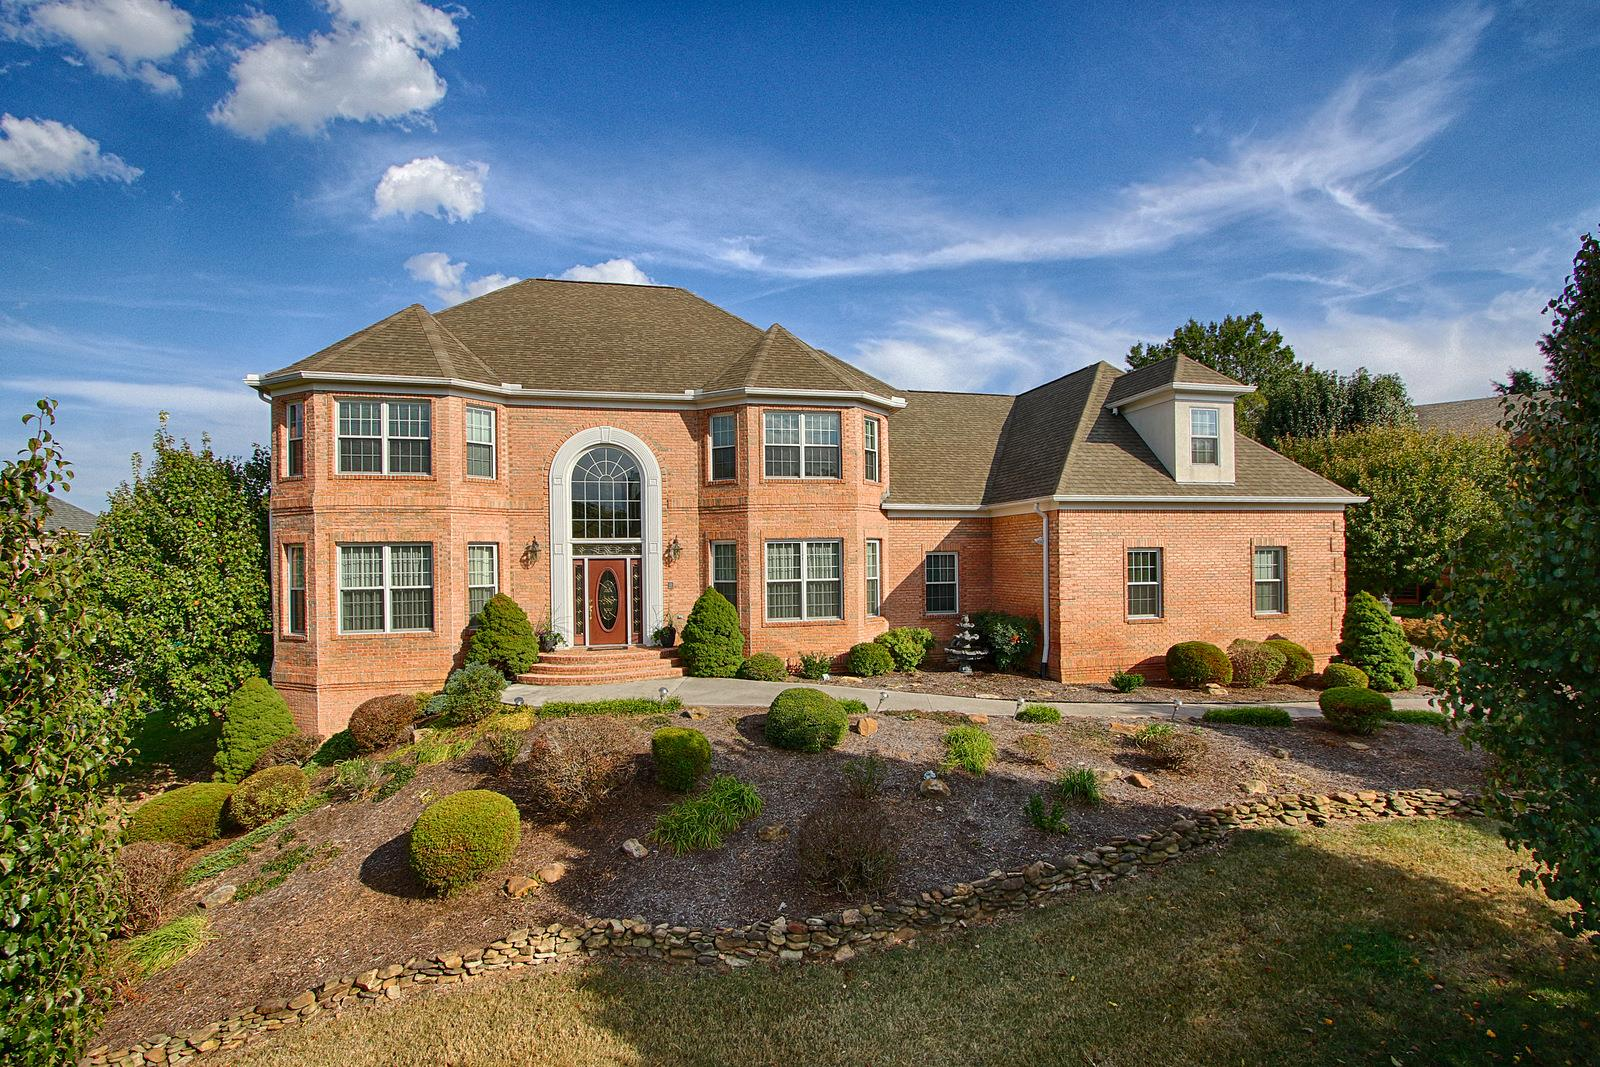 Single Family for Sale at 804 Lindenhall Circle 804 Lindenhall Circle Knoxville, Tennessee 37934 United States